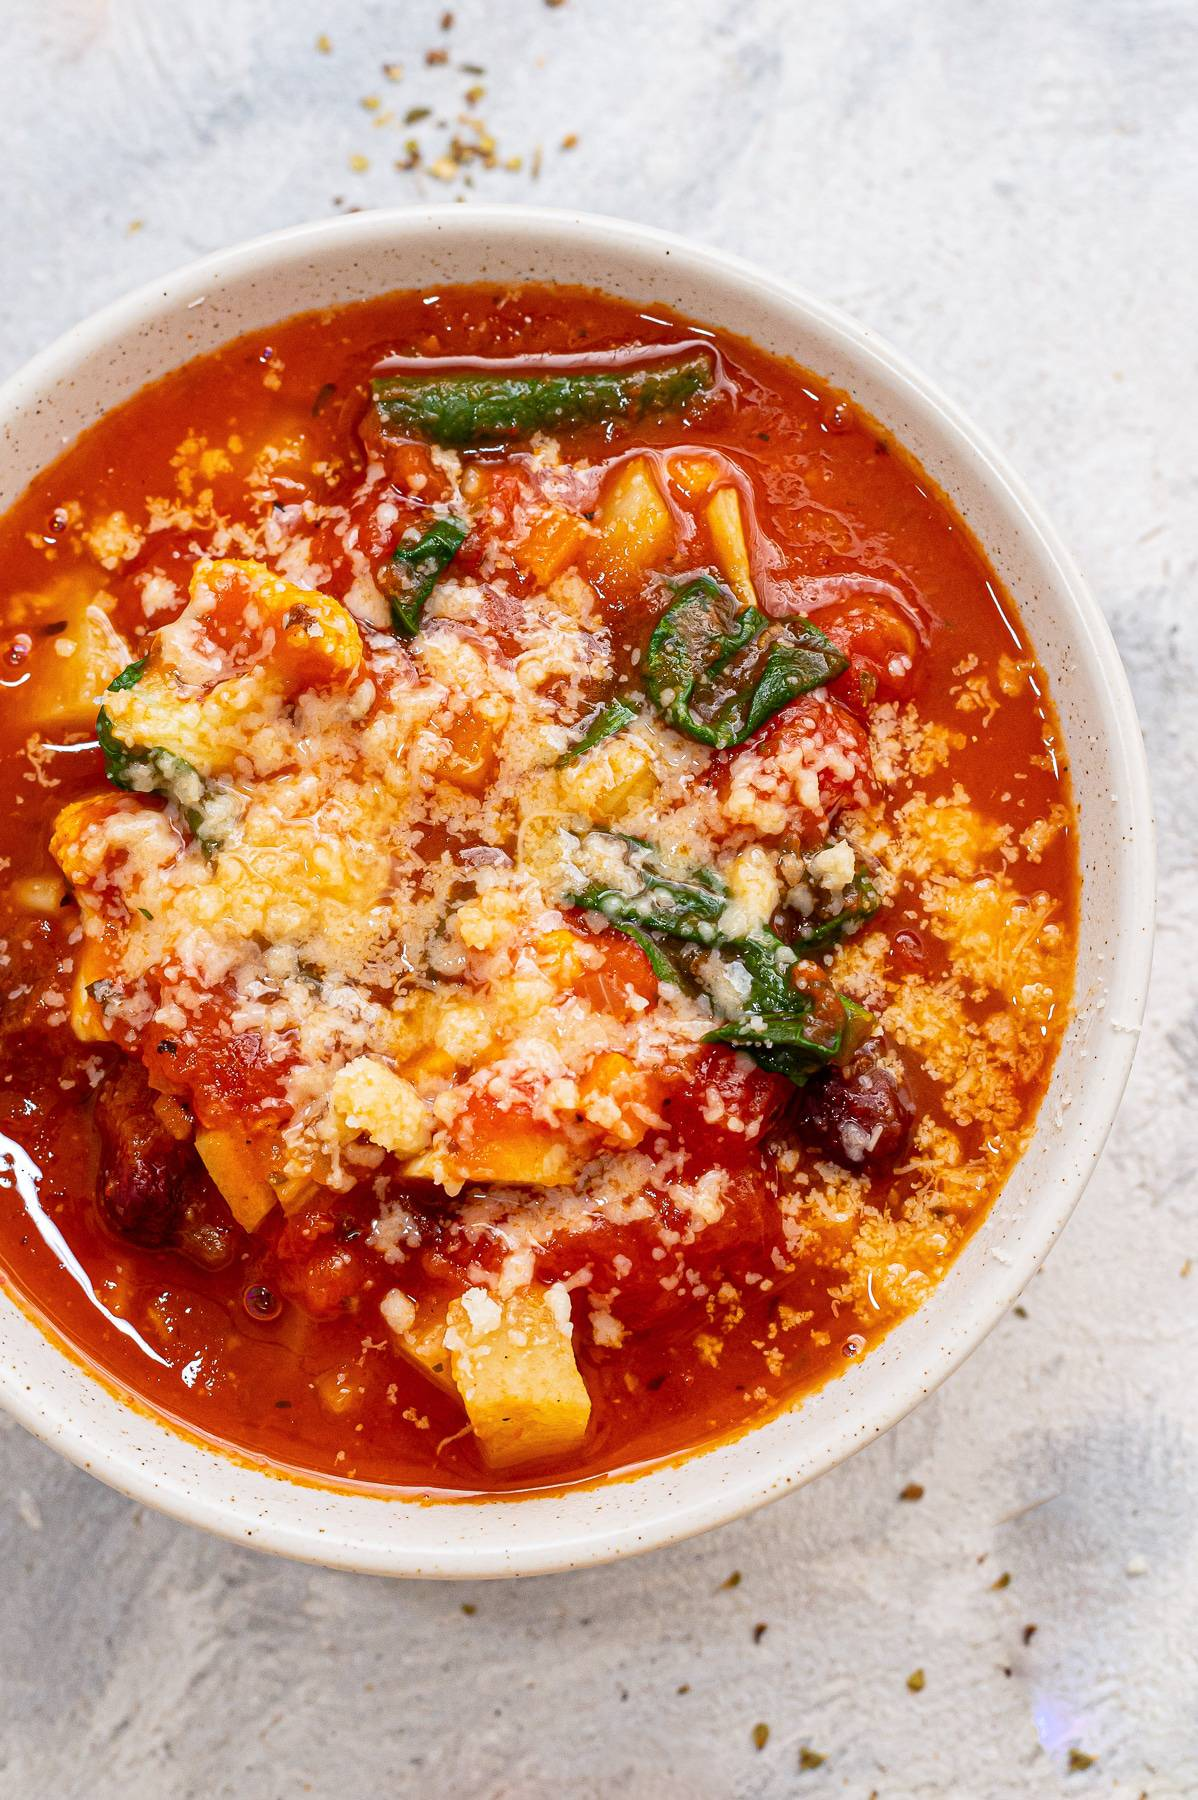 Tomato and Veggie Soup in a Bowl